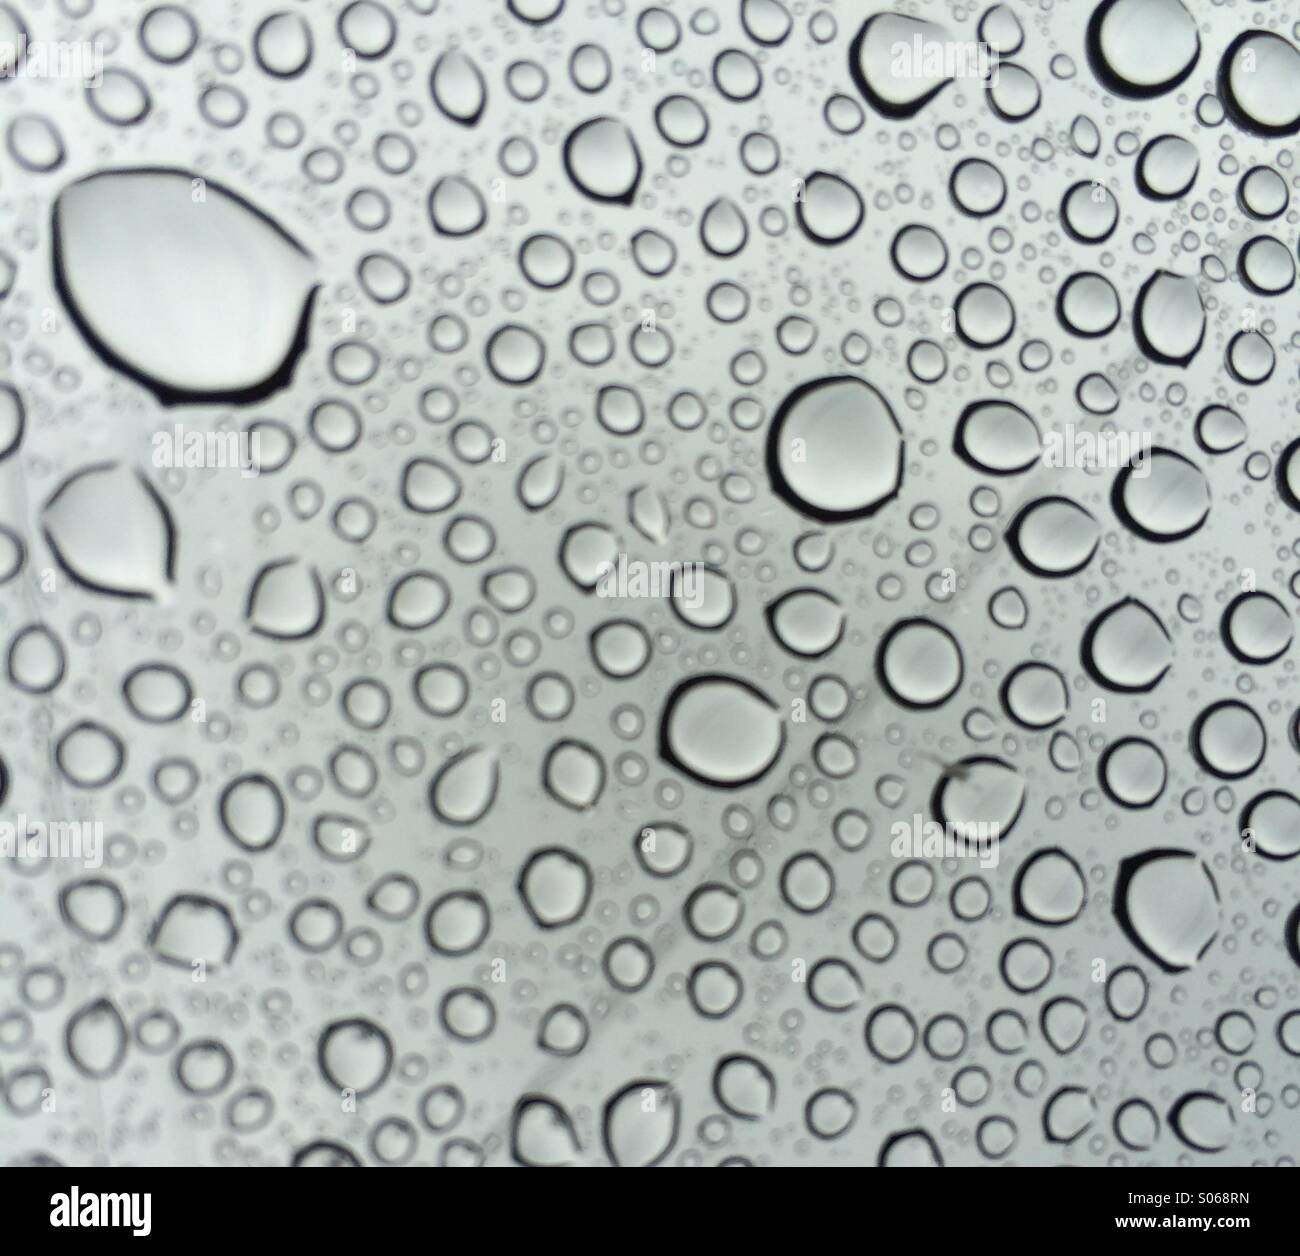 Seattle sunroof. Looking up through the raindrops to the grey summer sky. - Stock Image